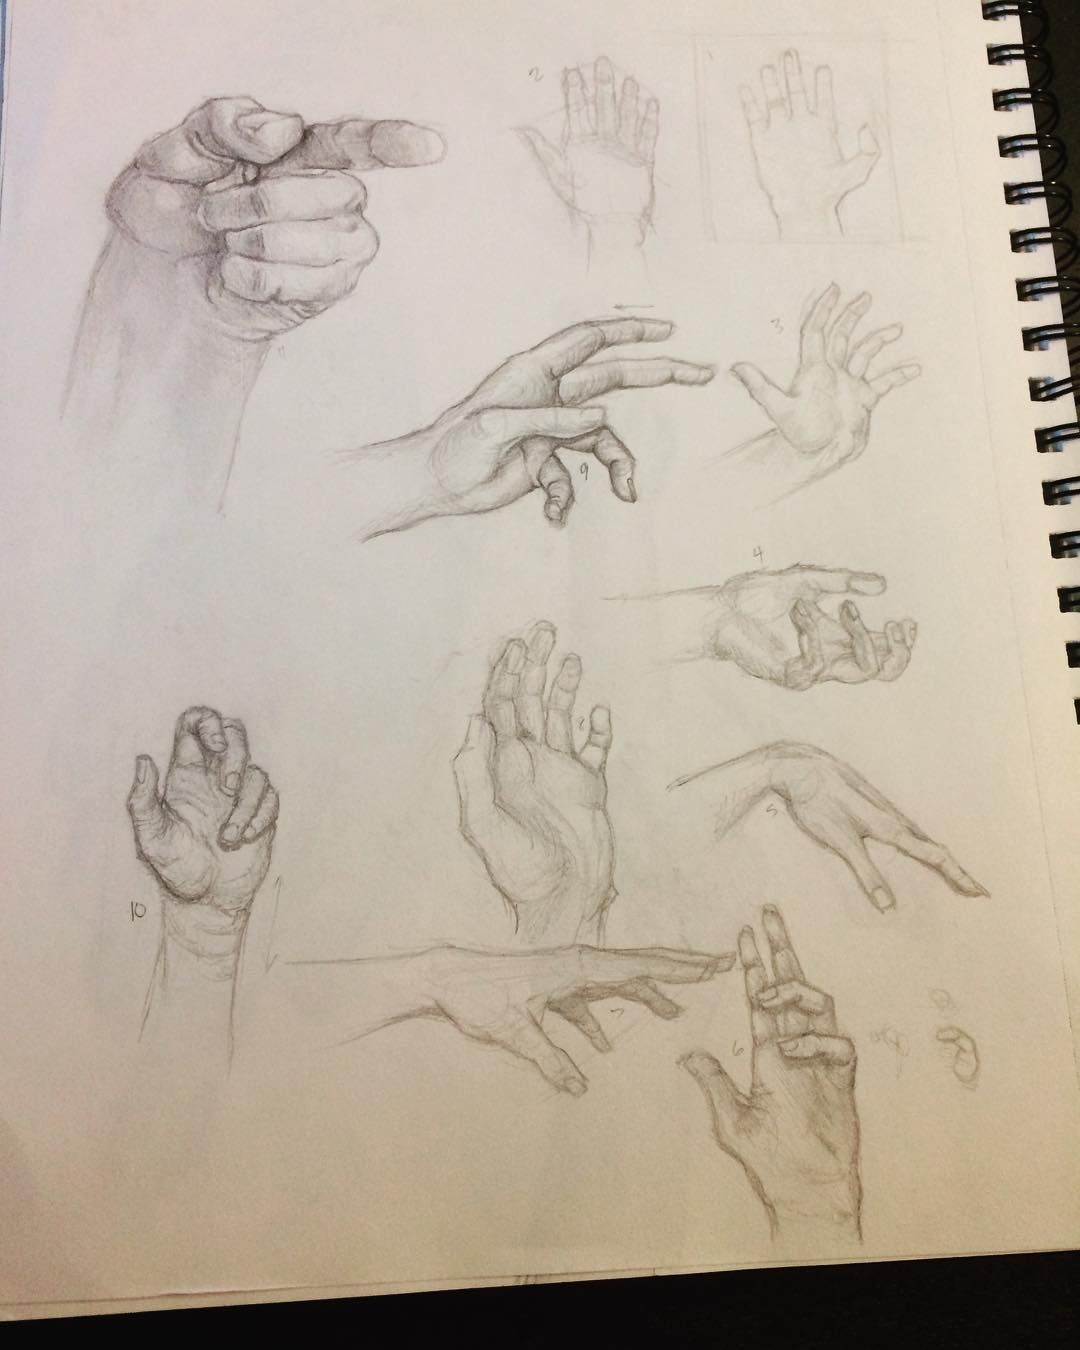 #daily #hand #practice using #pencil and occasionally #charcoal. Going to try to study a different part of #anatomy every week so that I can get better faster and stronger! :P ... #art #study #sketch #sketching #hand #hands #perspective #shading #realsim #human